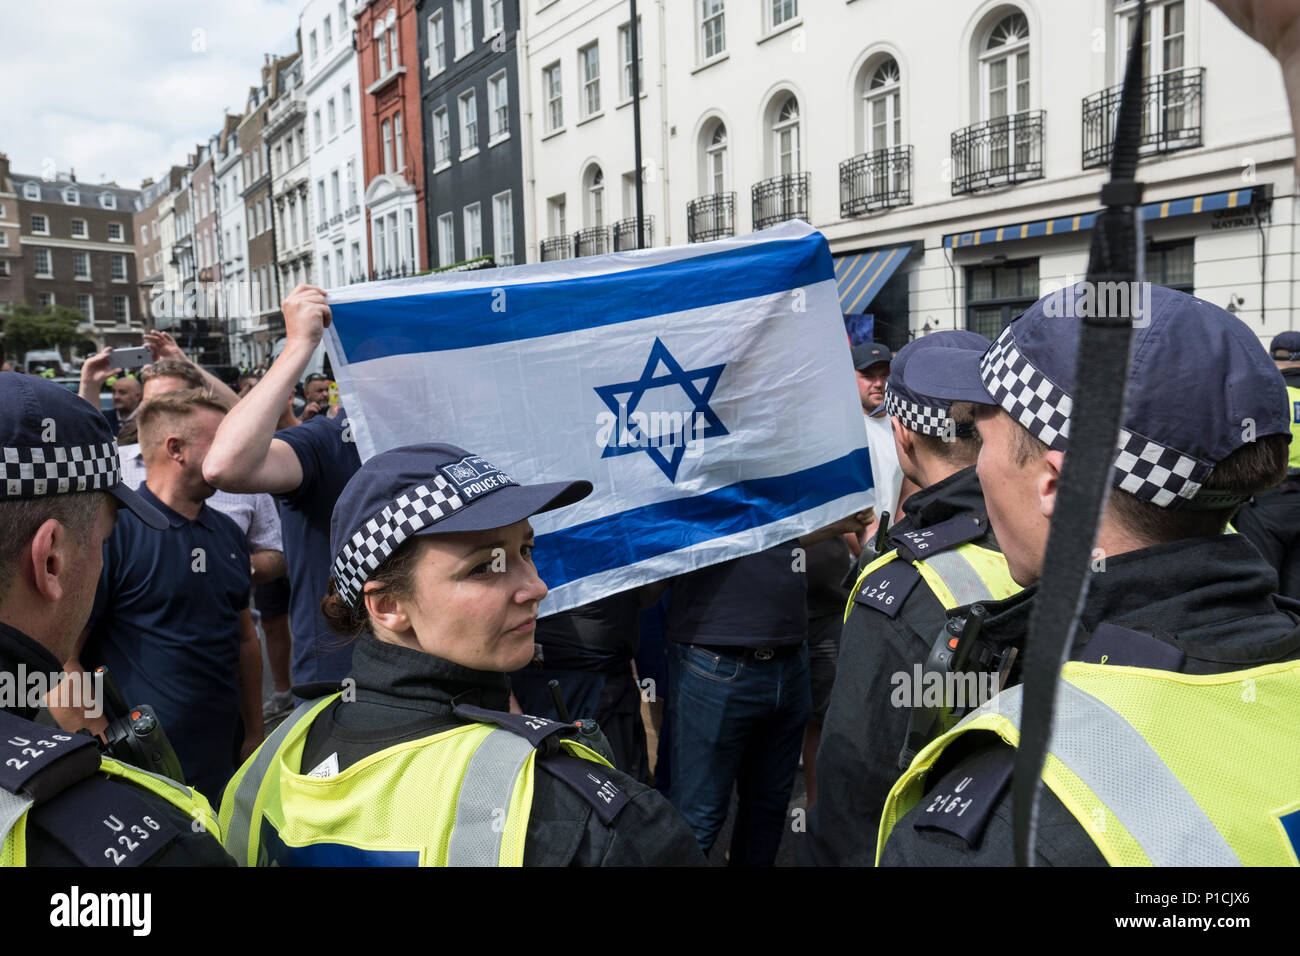 Opposition protesters hold an Israeli flag during the Al Quds Day rally.  The Al Quds Day rally is an event which is supposed to highlight the plight of the Palestinian people and raise awareness of Islamic persecution around the world. The rally has caused controversy across the UK because speakers at the event openly call for the destruction of Israel and some participants wave the flag of Hezbollah, a proscribed terrorist group. - Stock Image